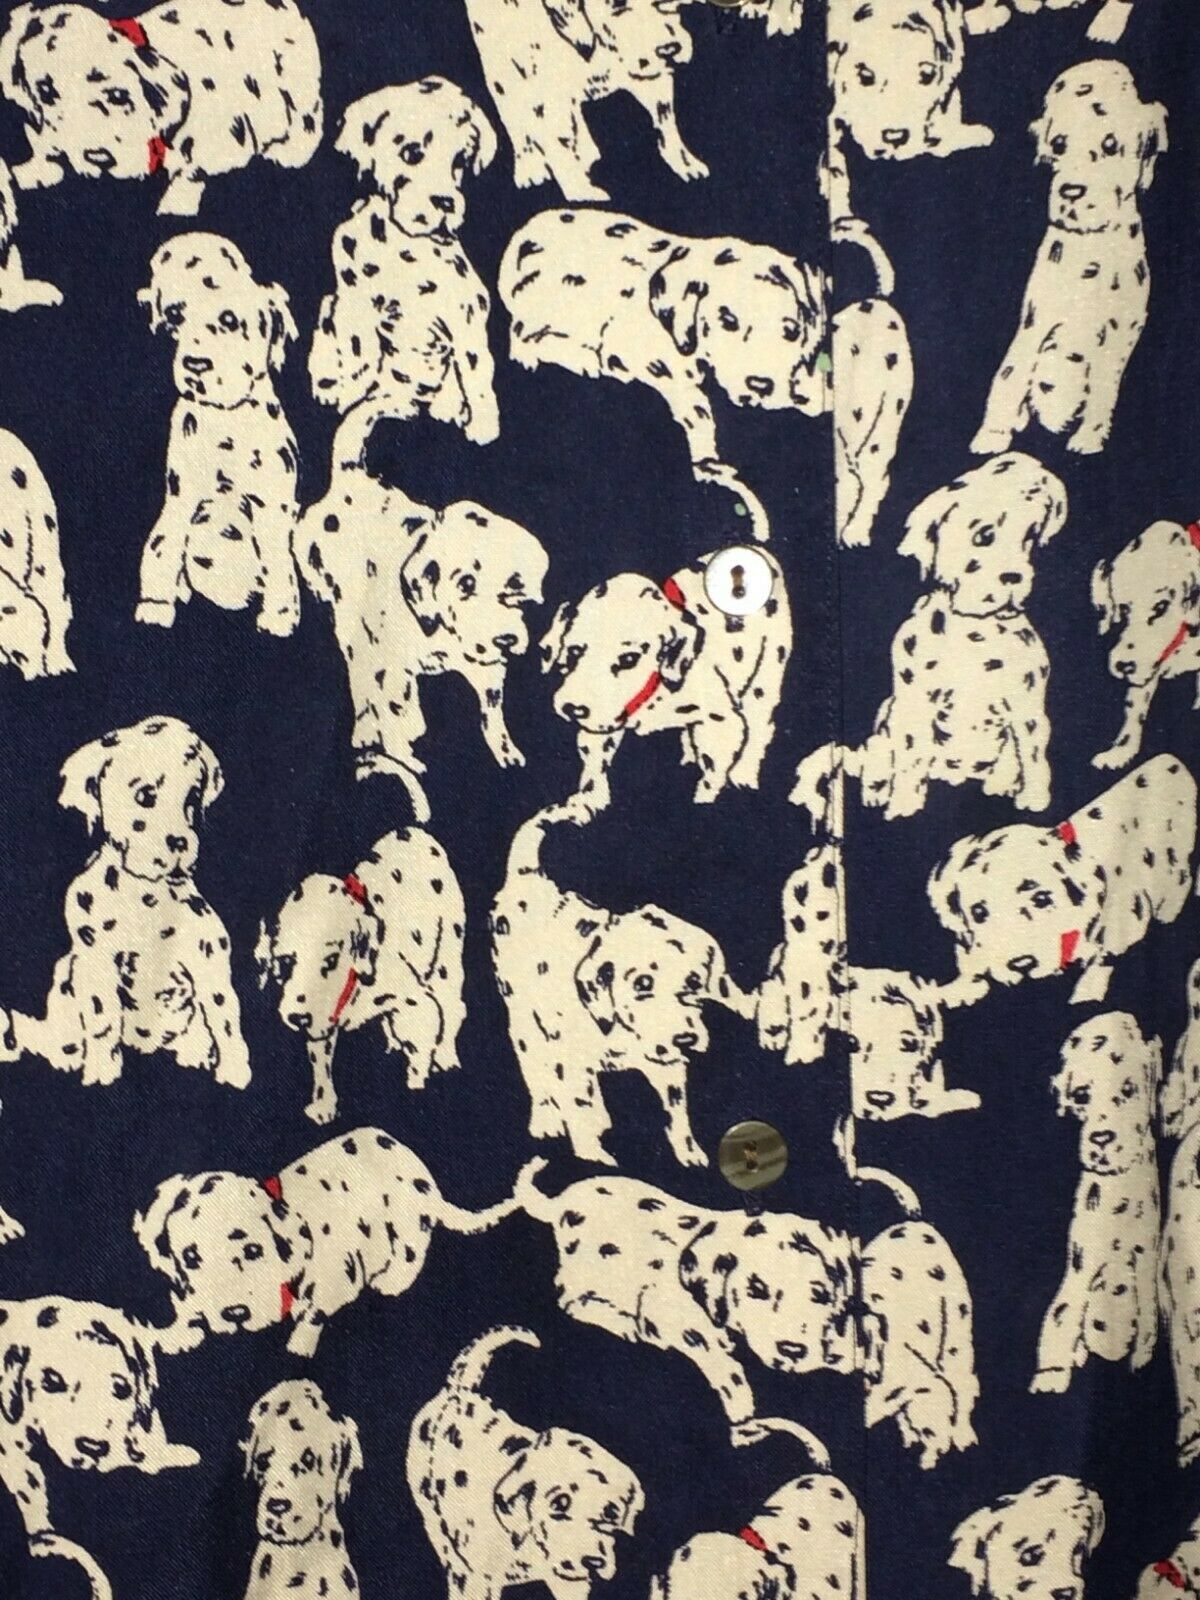 Woherren Jeans Bond 007 Dalmatians Dog Silk Blouse Top Shirt Größe Medium